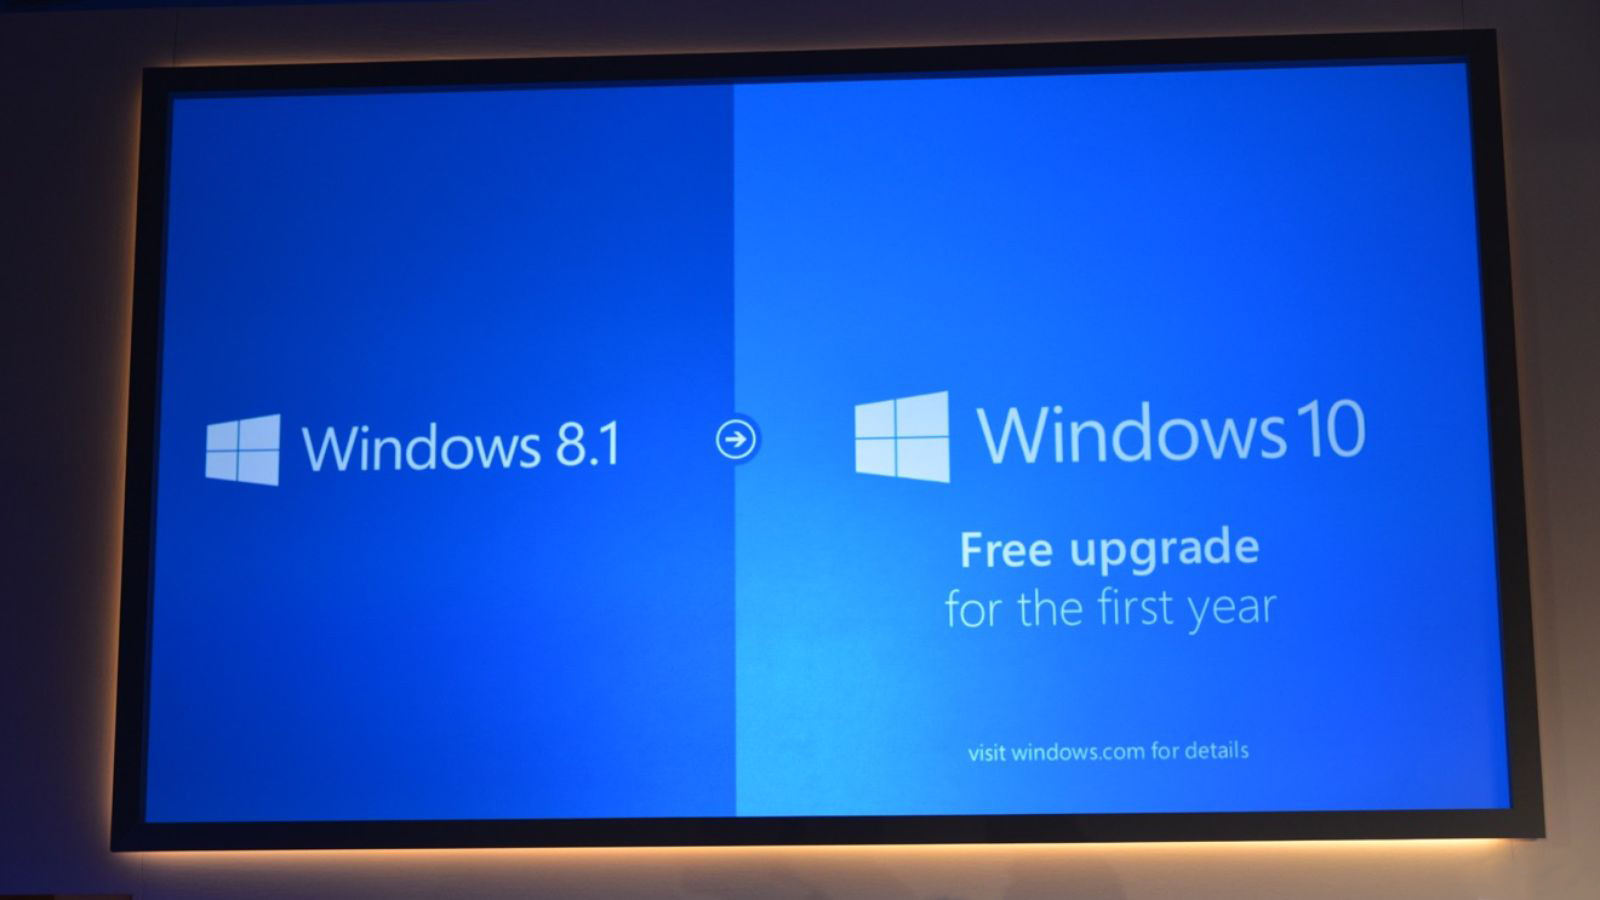 microsoft - windows 10 - free upgrade for the first year